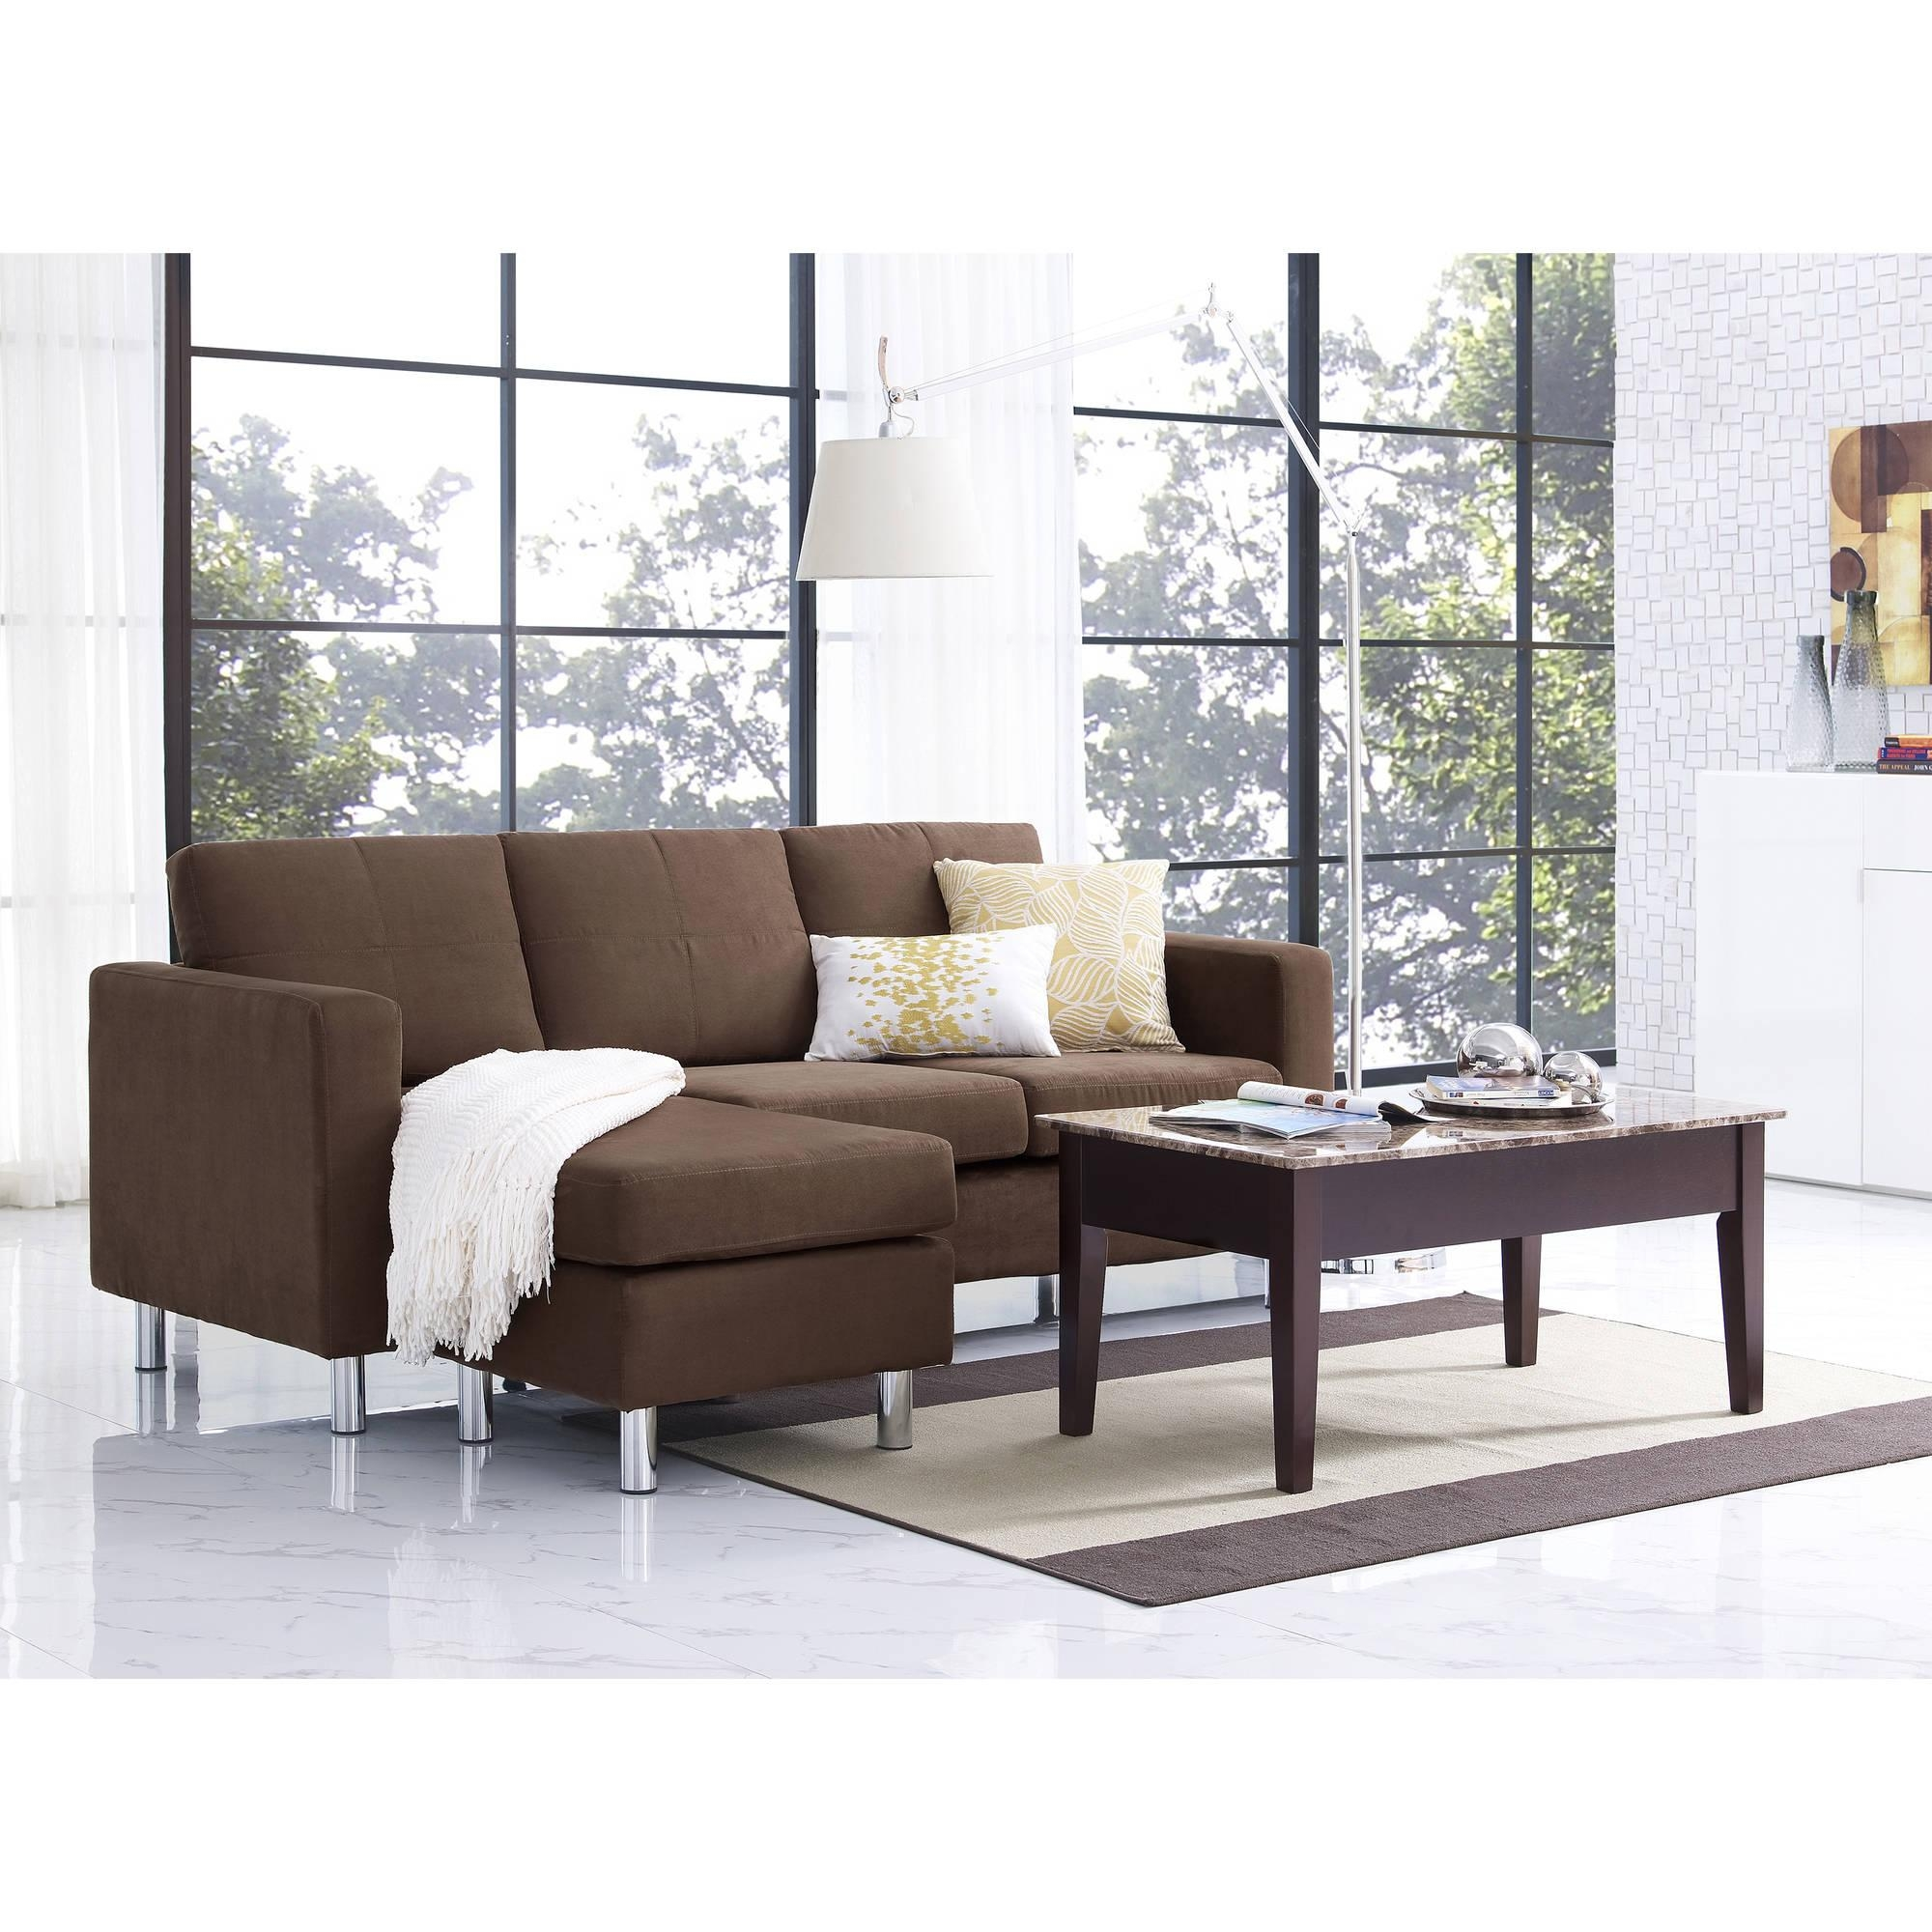 Dorel Living Small Spaces Configurable Sectional Sofa, Multiple Inside Small Sectional Sofas For Small Spaces (View 4 of 20)